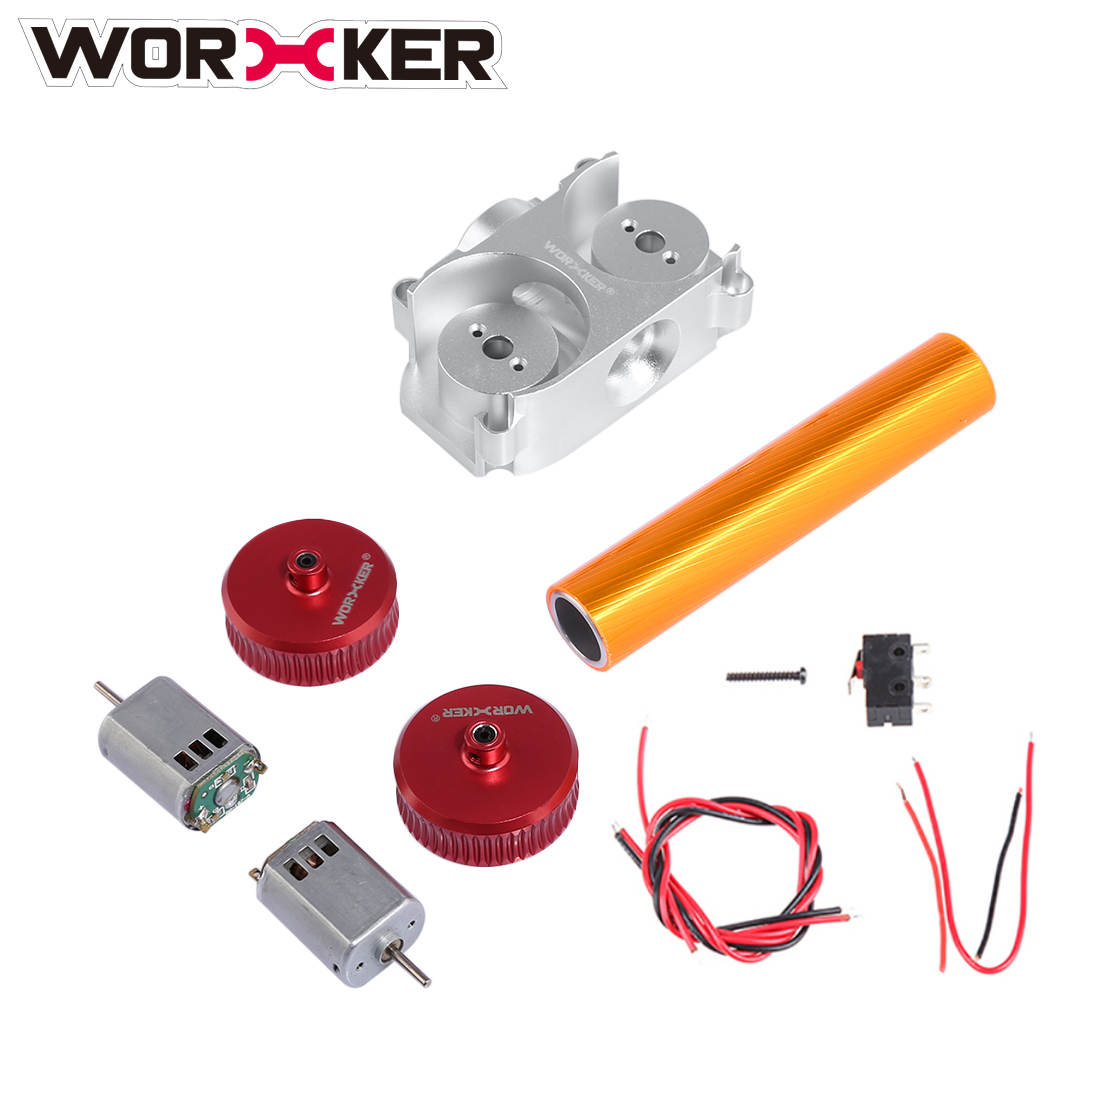 Worker Modified Parts Set Flywheel amp Motor Professional Toy Accessories for Nerf STF/CS-18(Power Type) - Red + Silver worker f10555 no 152 stf type b set professional toy gun accessories for nerf stryfe black